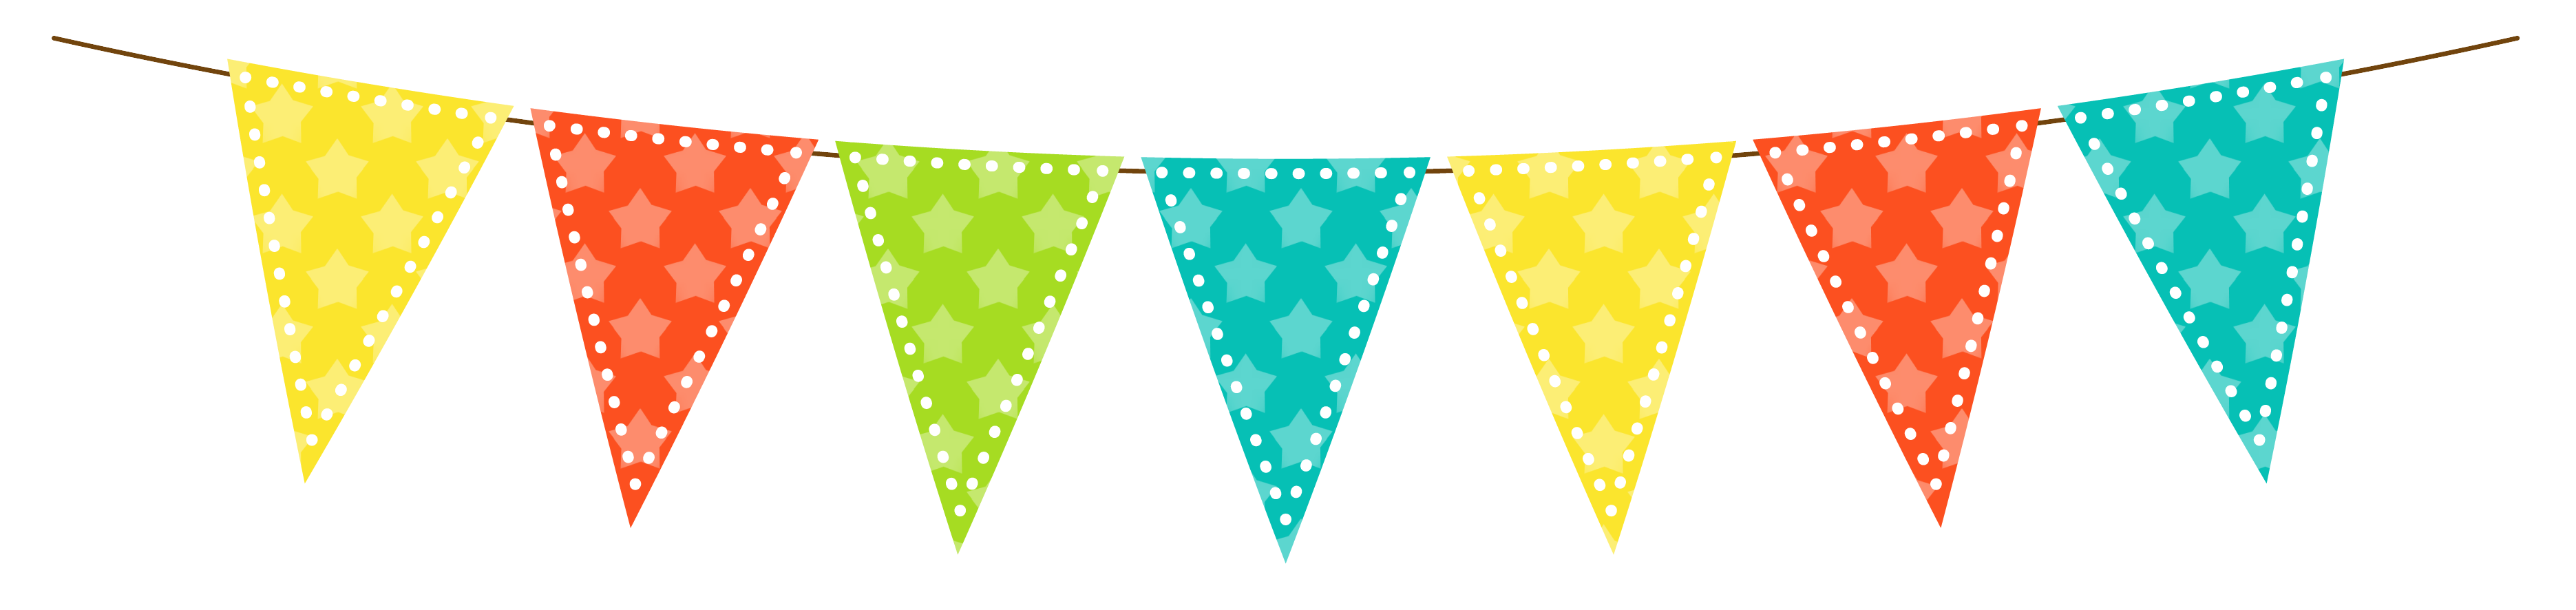 Garland clipart flag.  collection of bunting